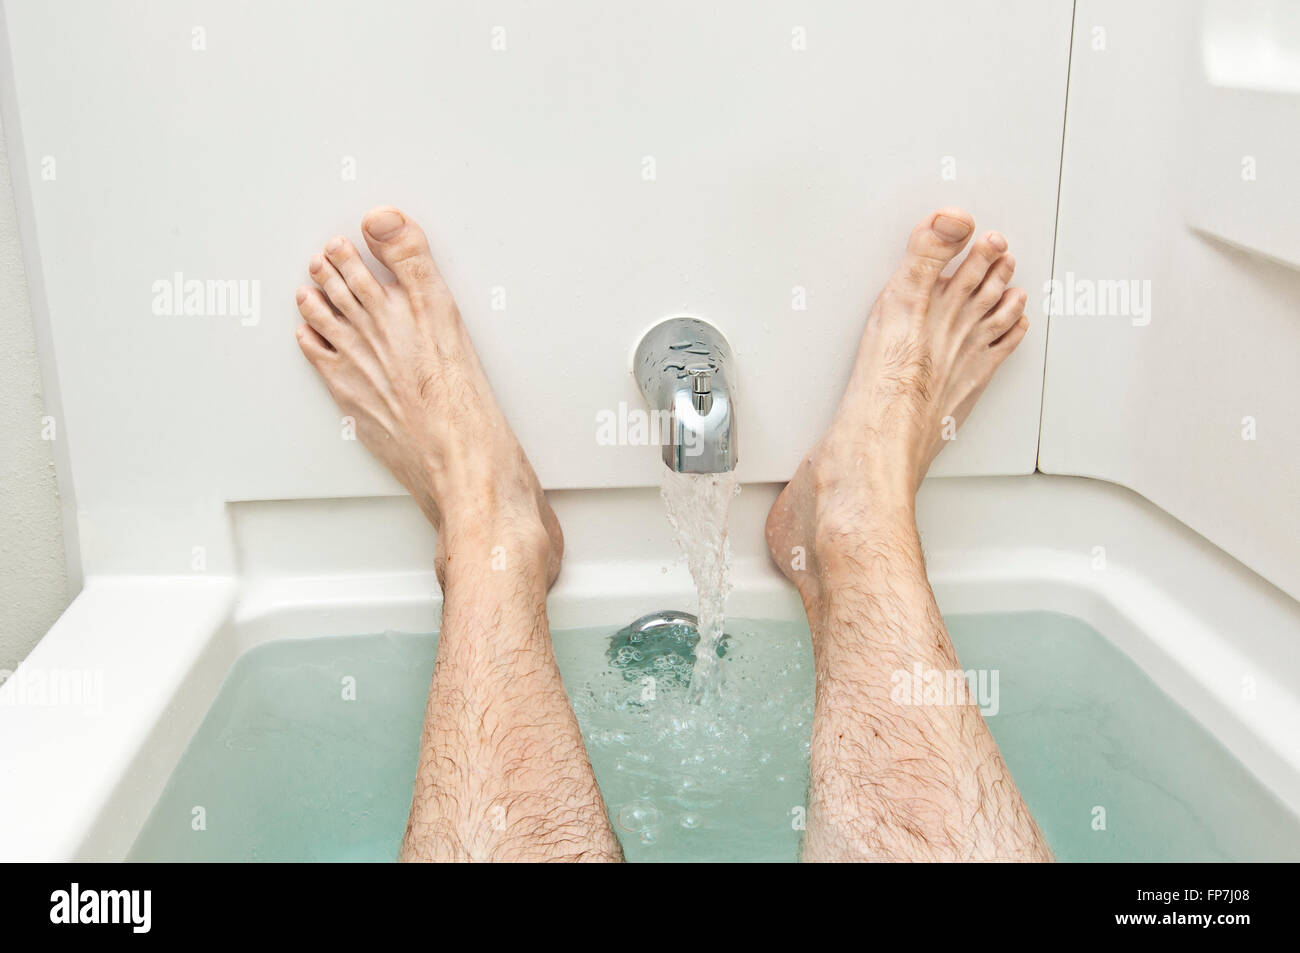 Bathtub With Water Running And Man\'s Feet Stock Photo: 99742056 - Alamy